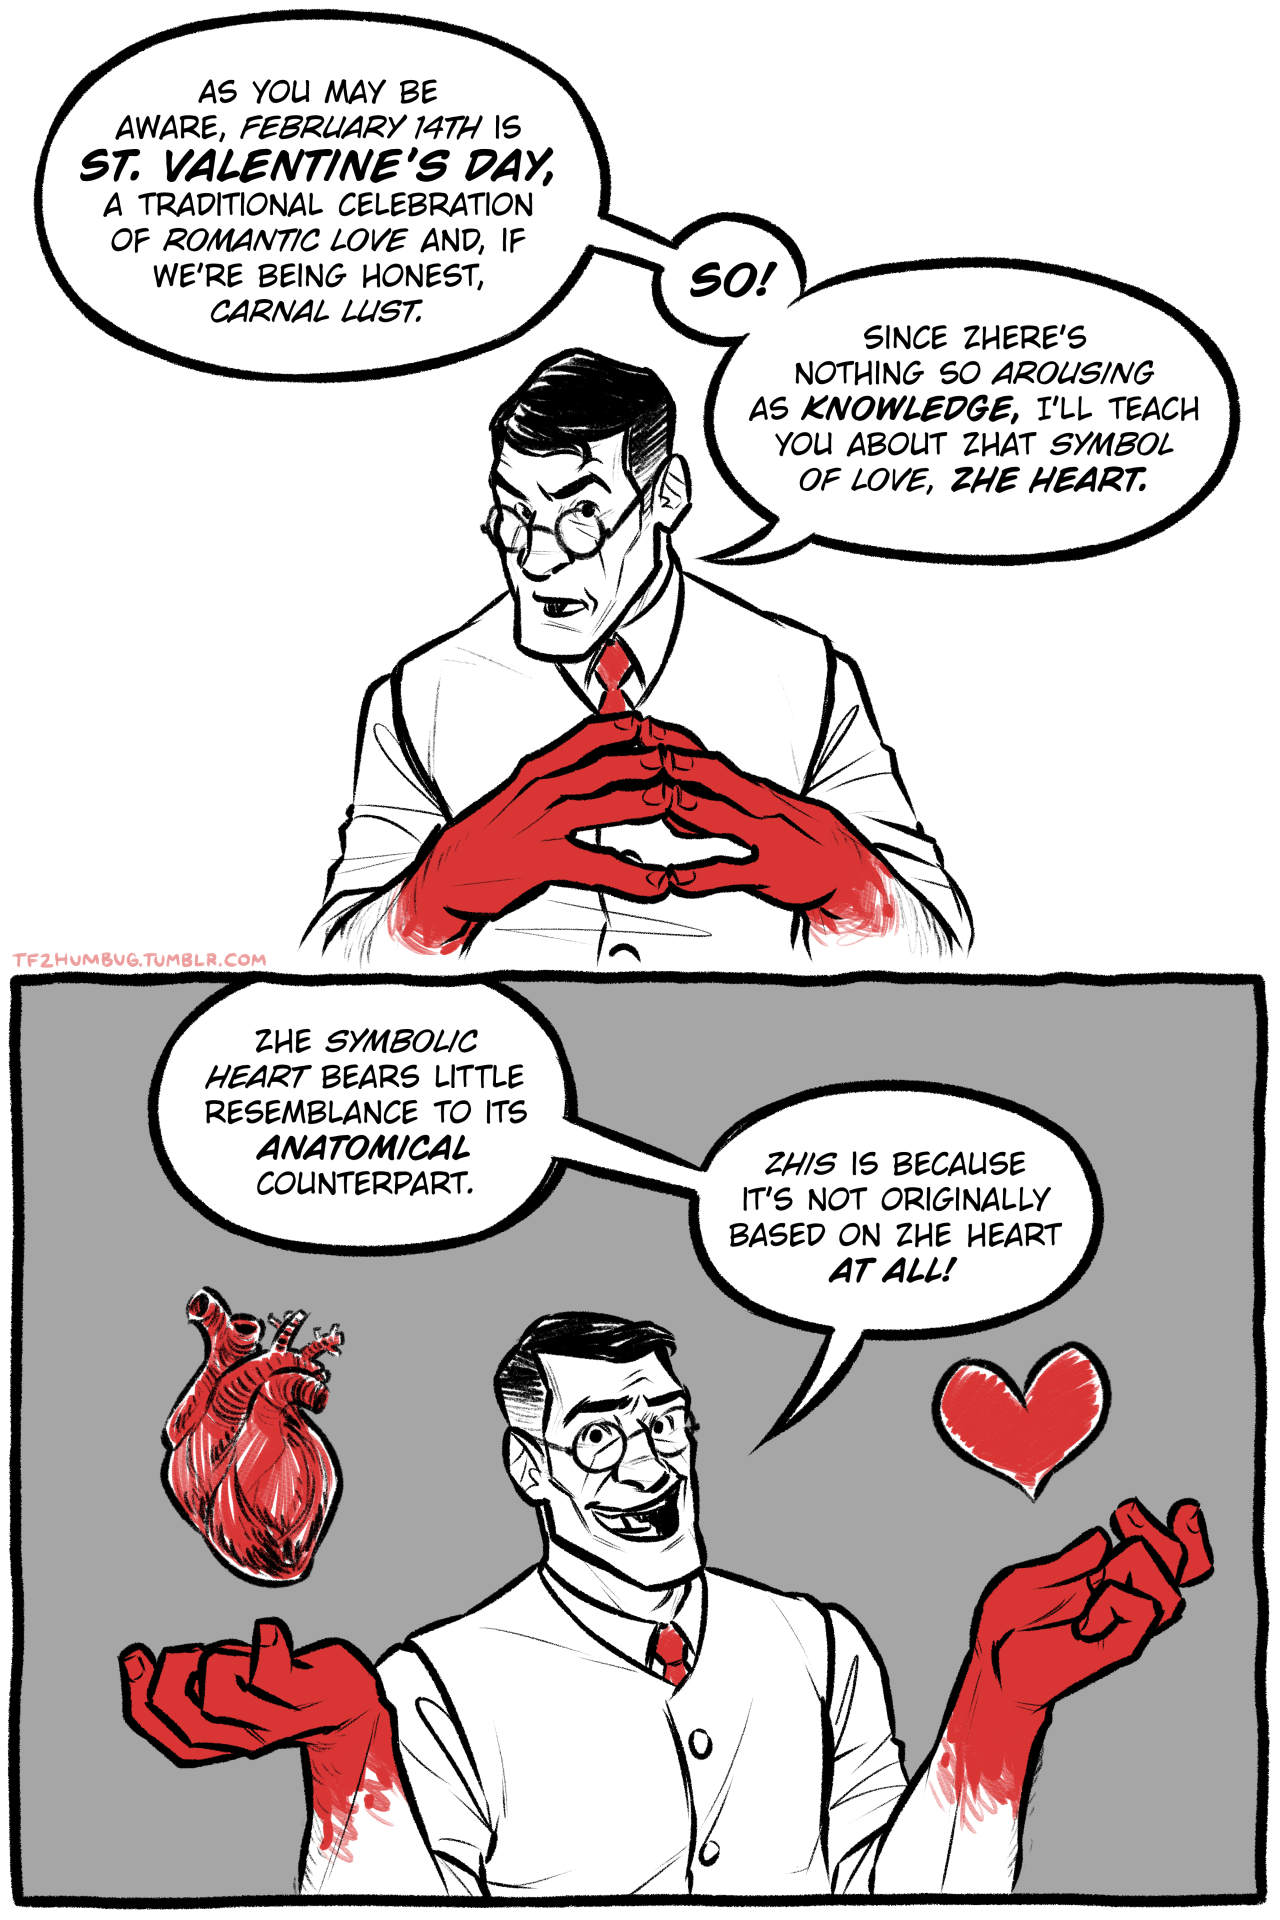 The Medic Explains The Symbolism Of The Heart Games